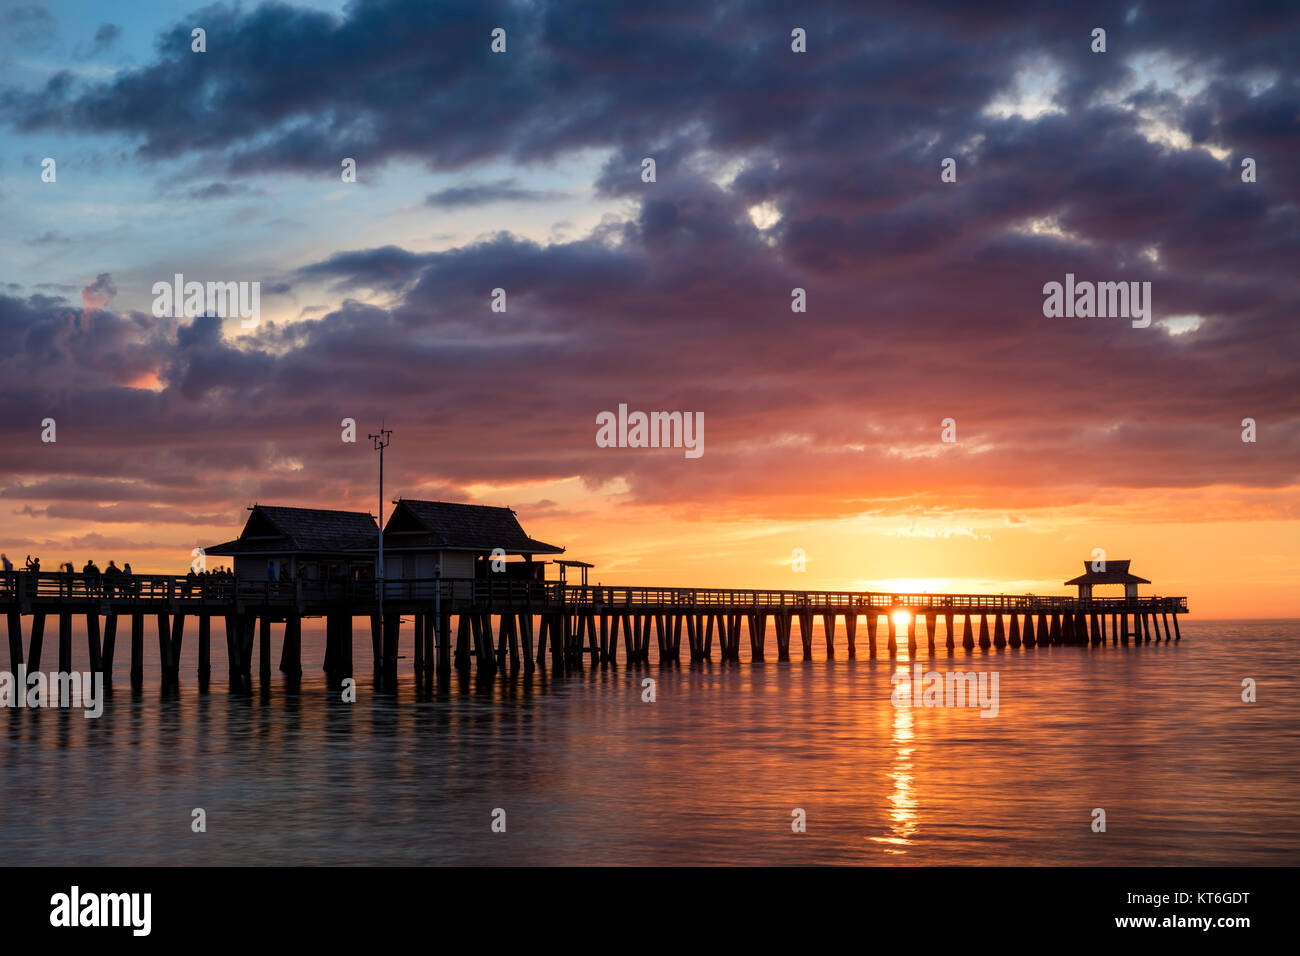 Colorful sunset over the Naples Pier, Naples, Florida, USA - Stock Image